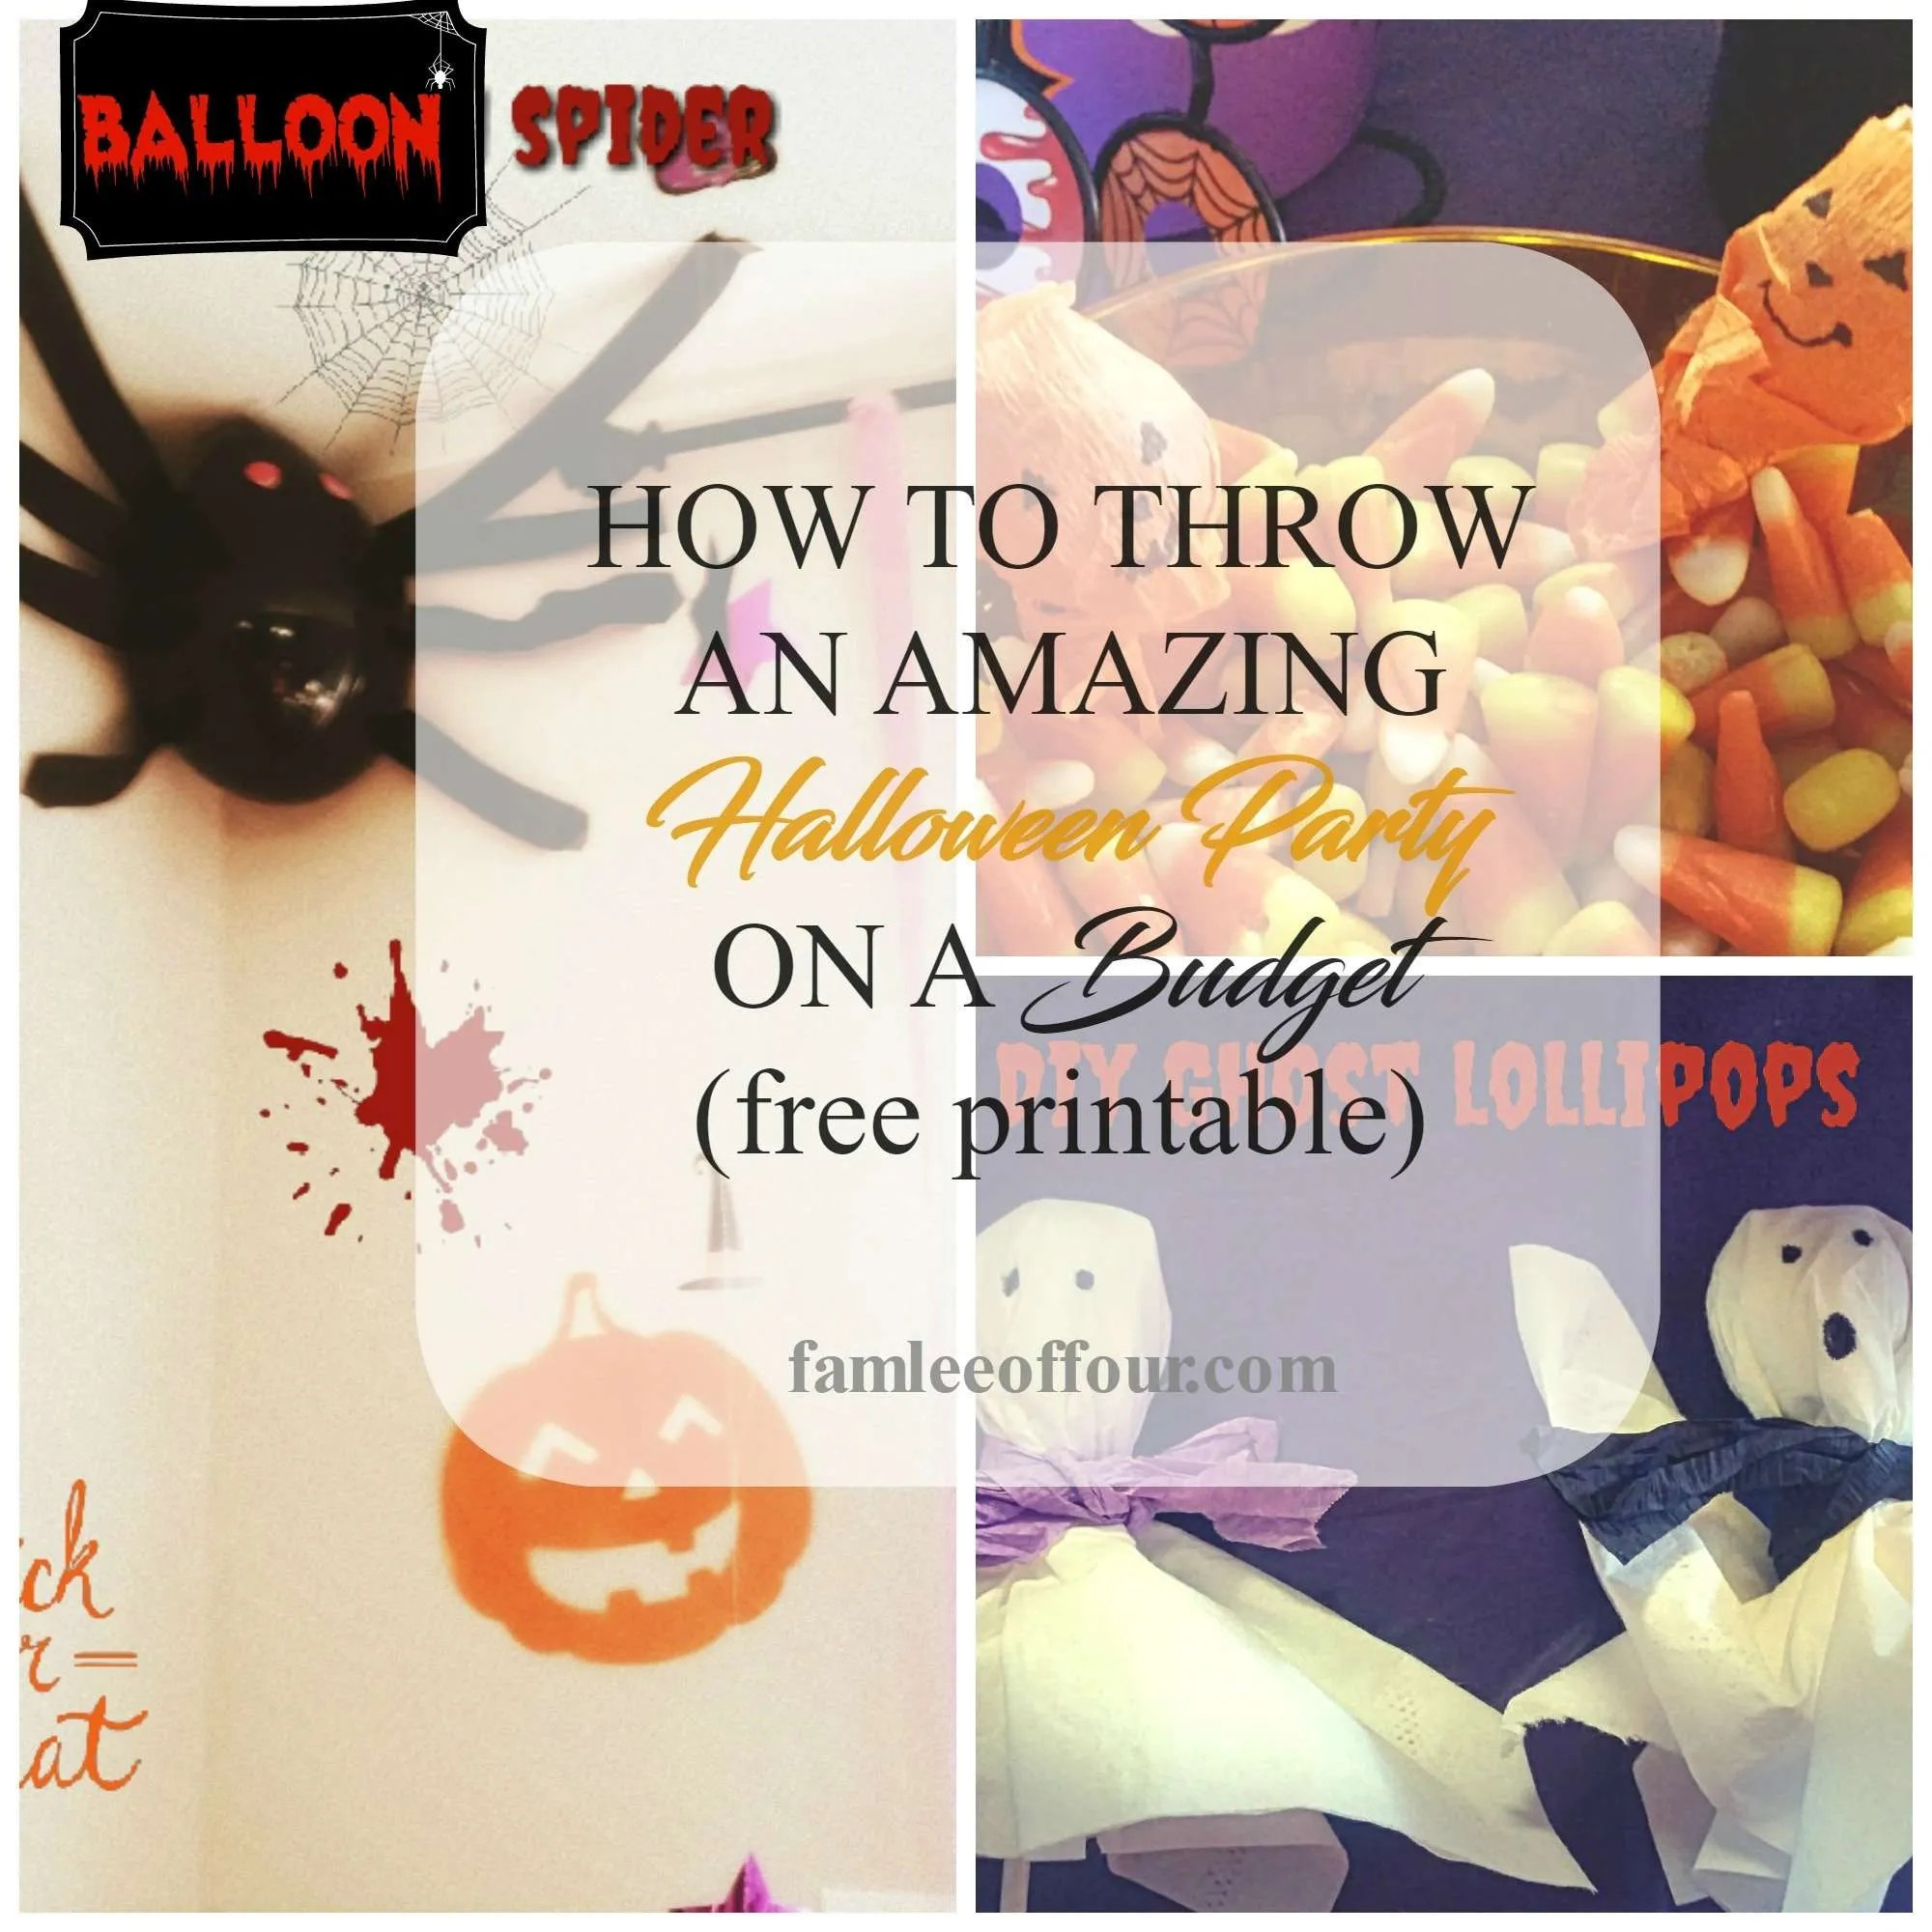 how to throw an amazing halloween party on a budget